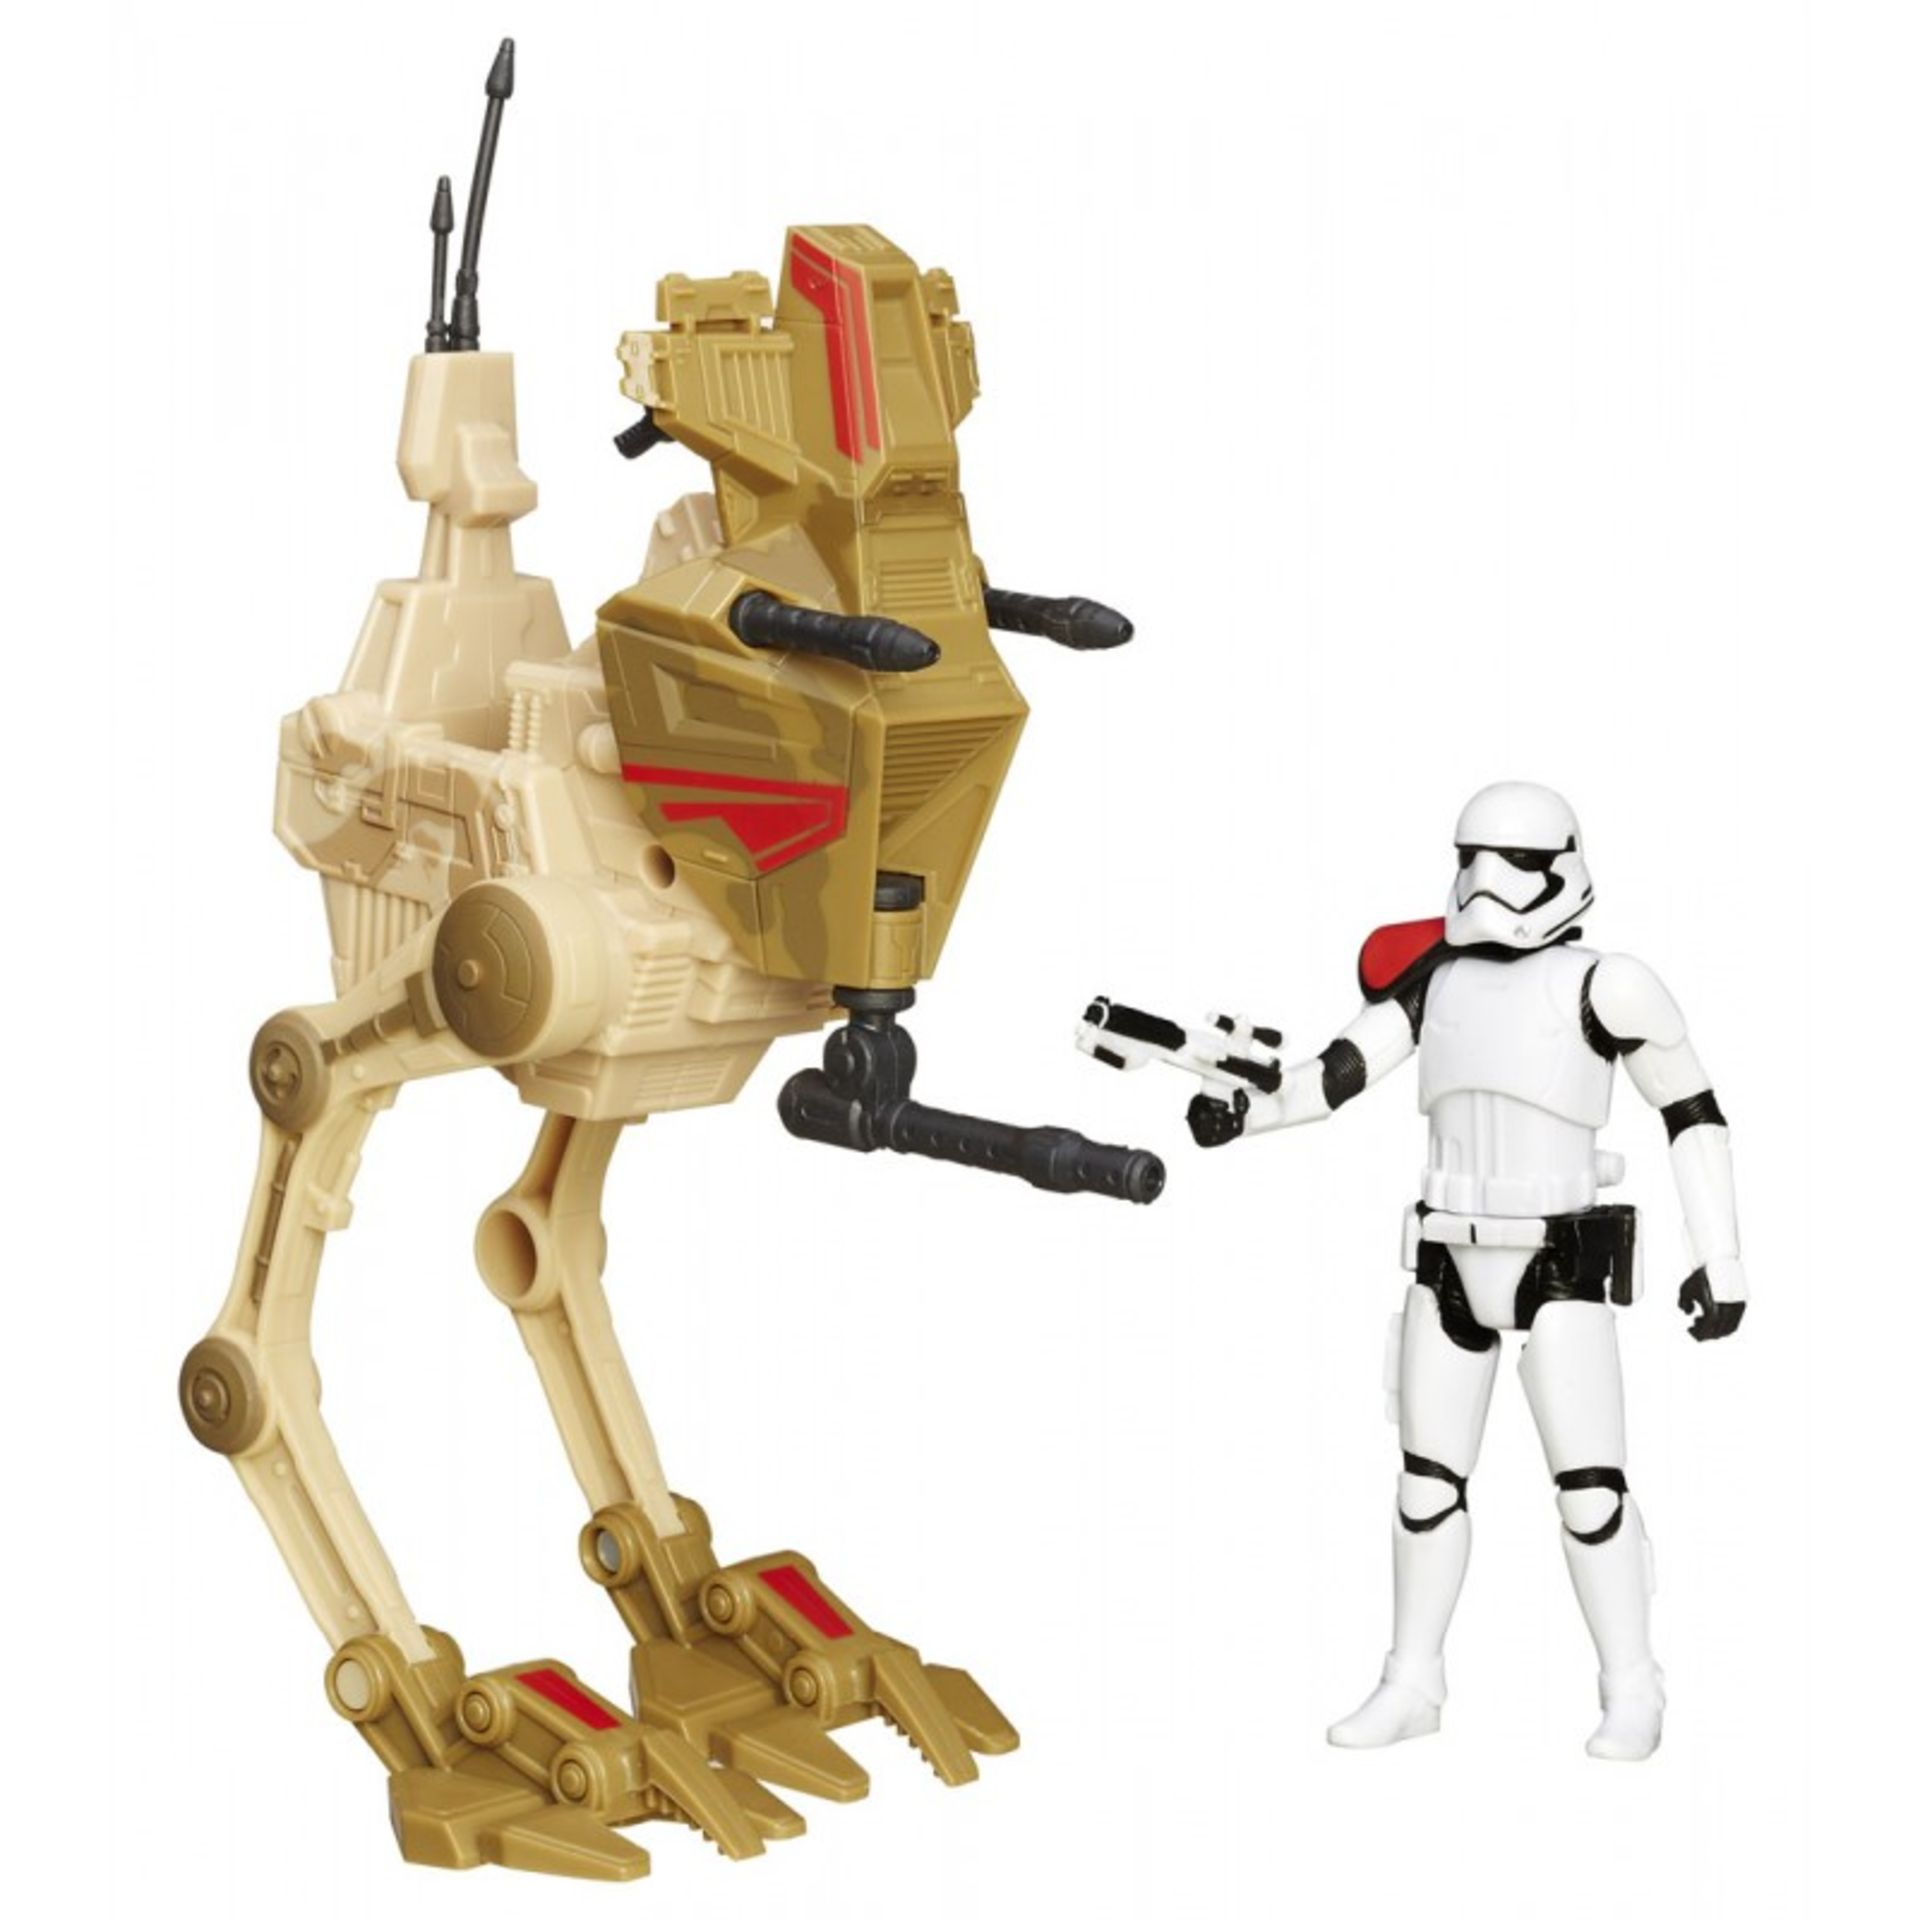 Lot 51773 - V Brand New Star Wars The Force Awakens Desert Assault Walker - Online Price £32.99 (My Geek Box)